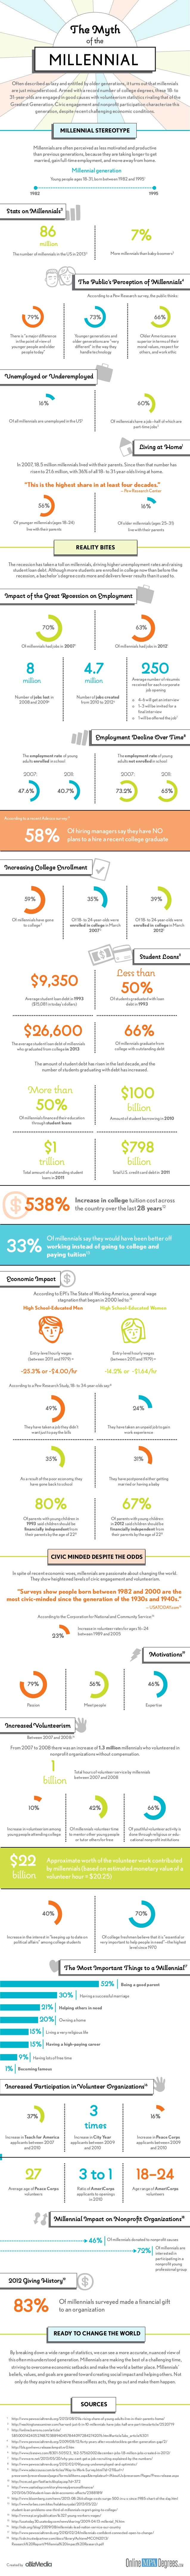 MillennialImpact onNonprofit Organizations18 TheMyth of the MILLENNIAL Often described as lazy and entitled by older genera...